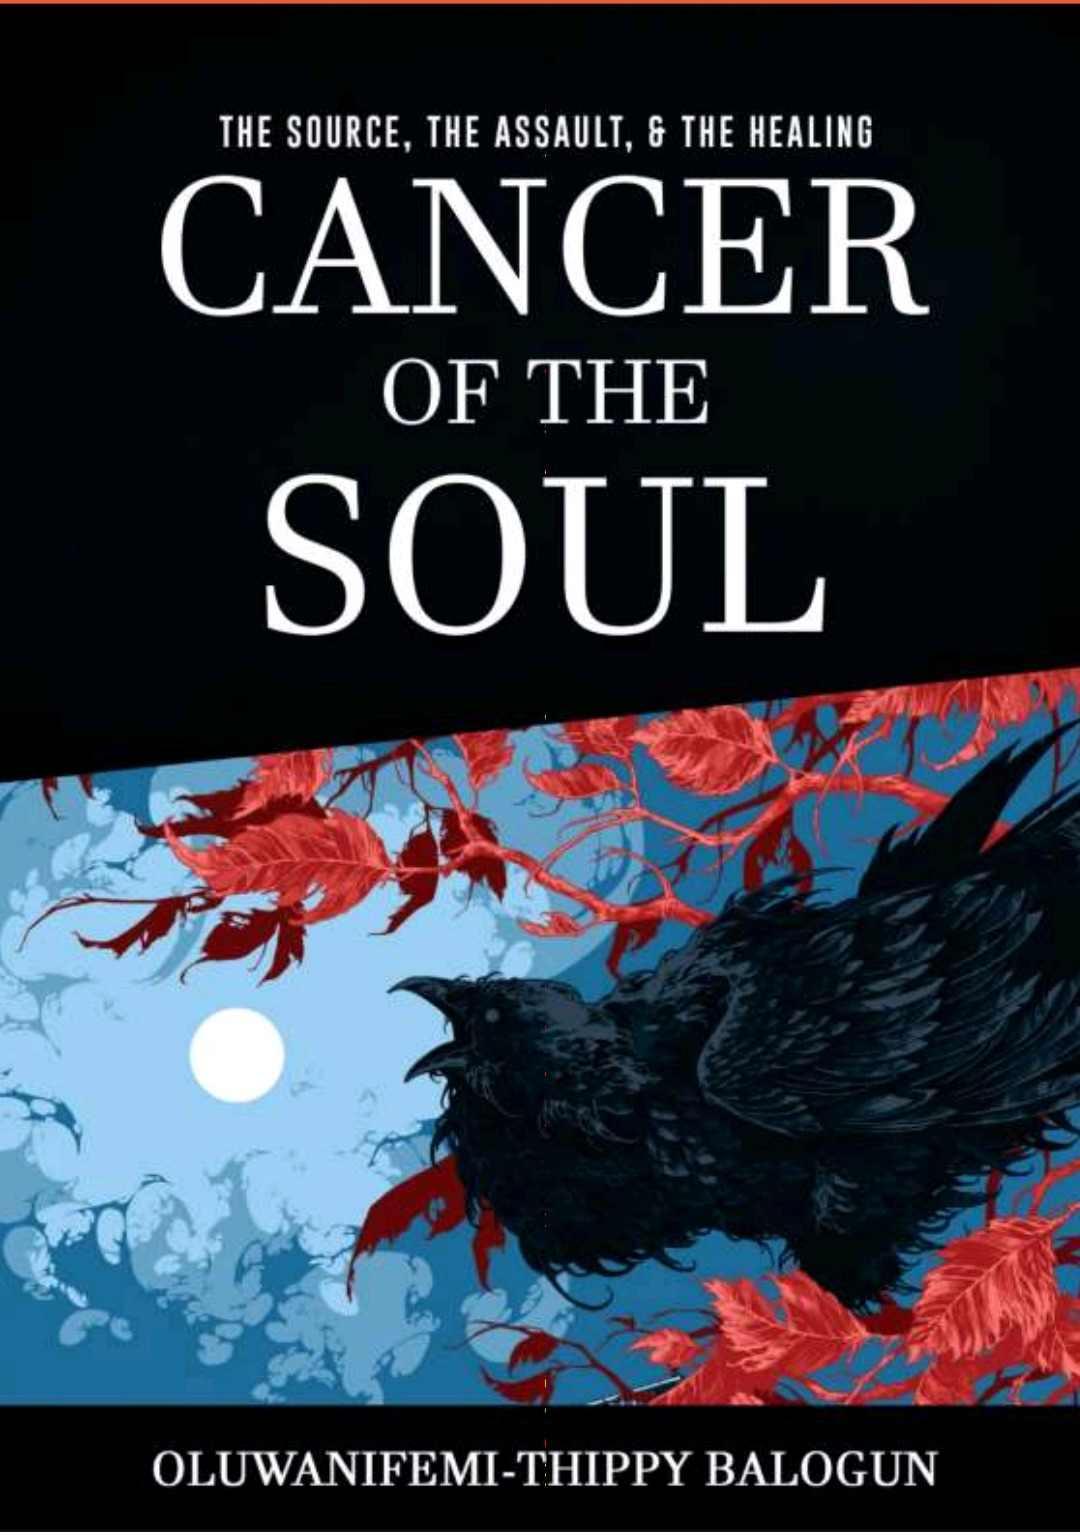 CANCER OF THE SOUL